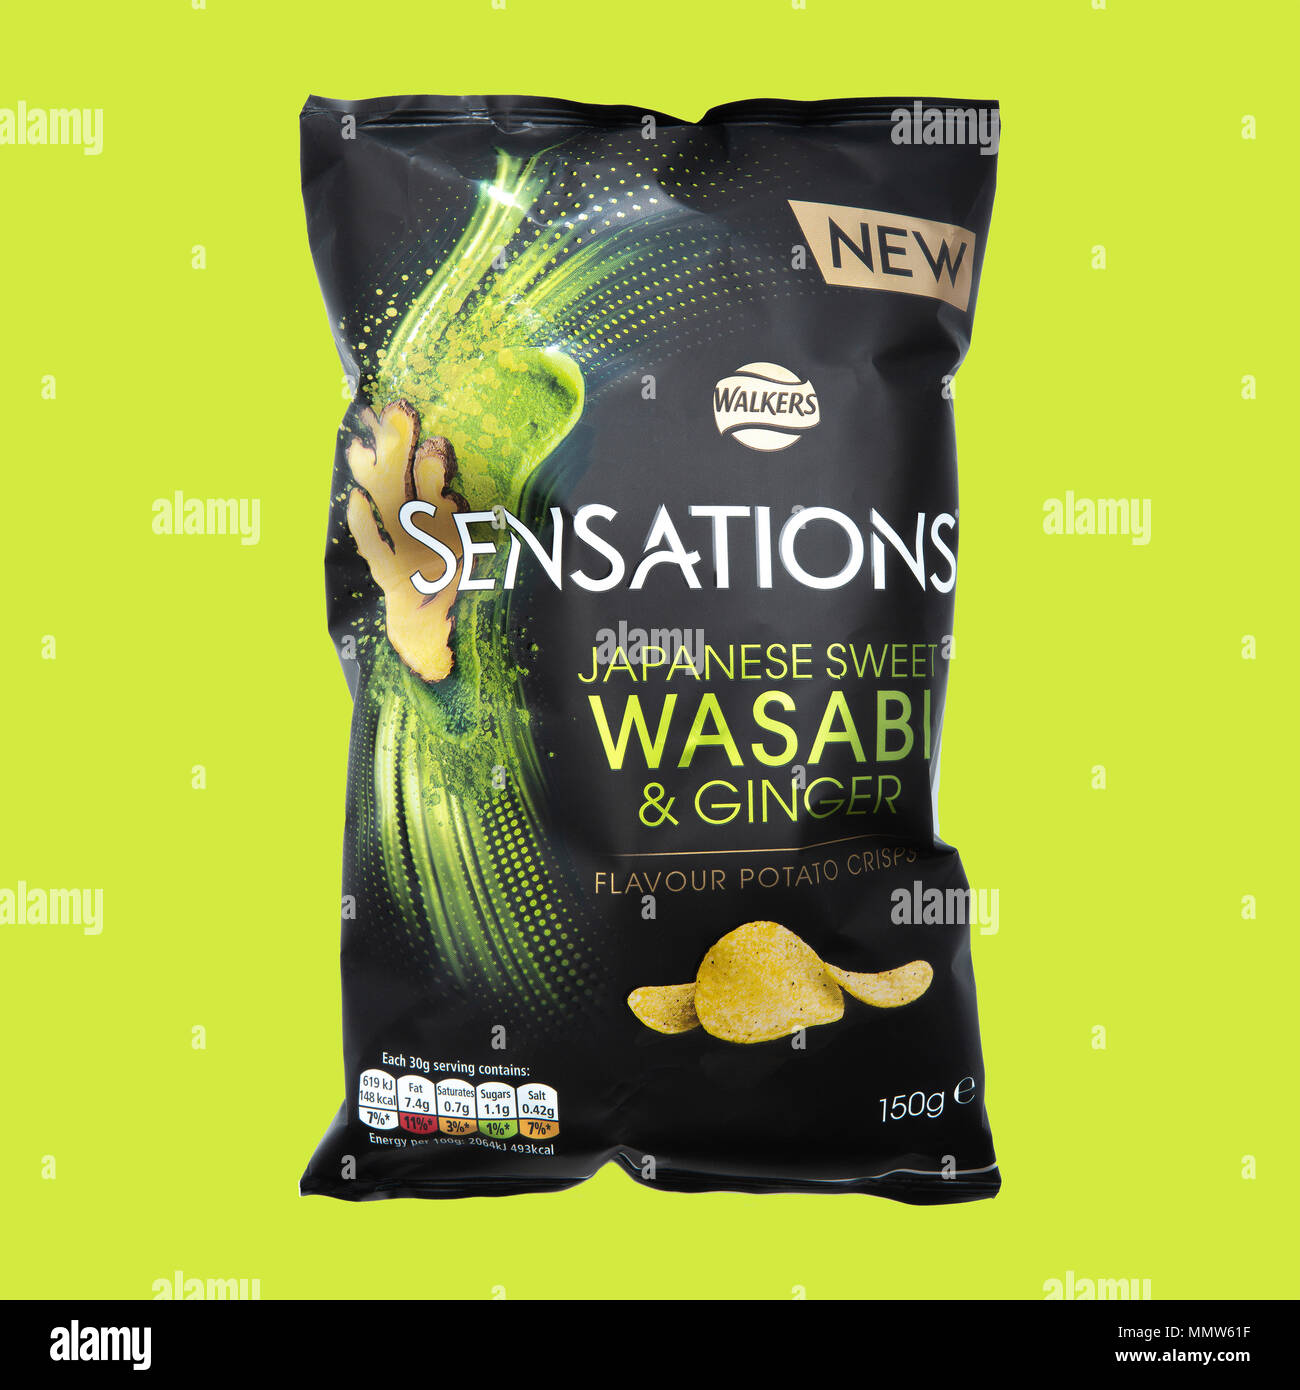 SWINDON, UK - MAY 13, 2018: Walkers Sensations Japanese Sweet Wasabi and Ginger Flavour Potato Crisps on a lime green background - Stock Image